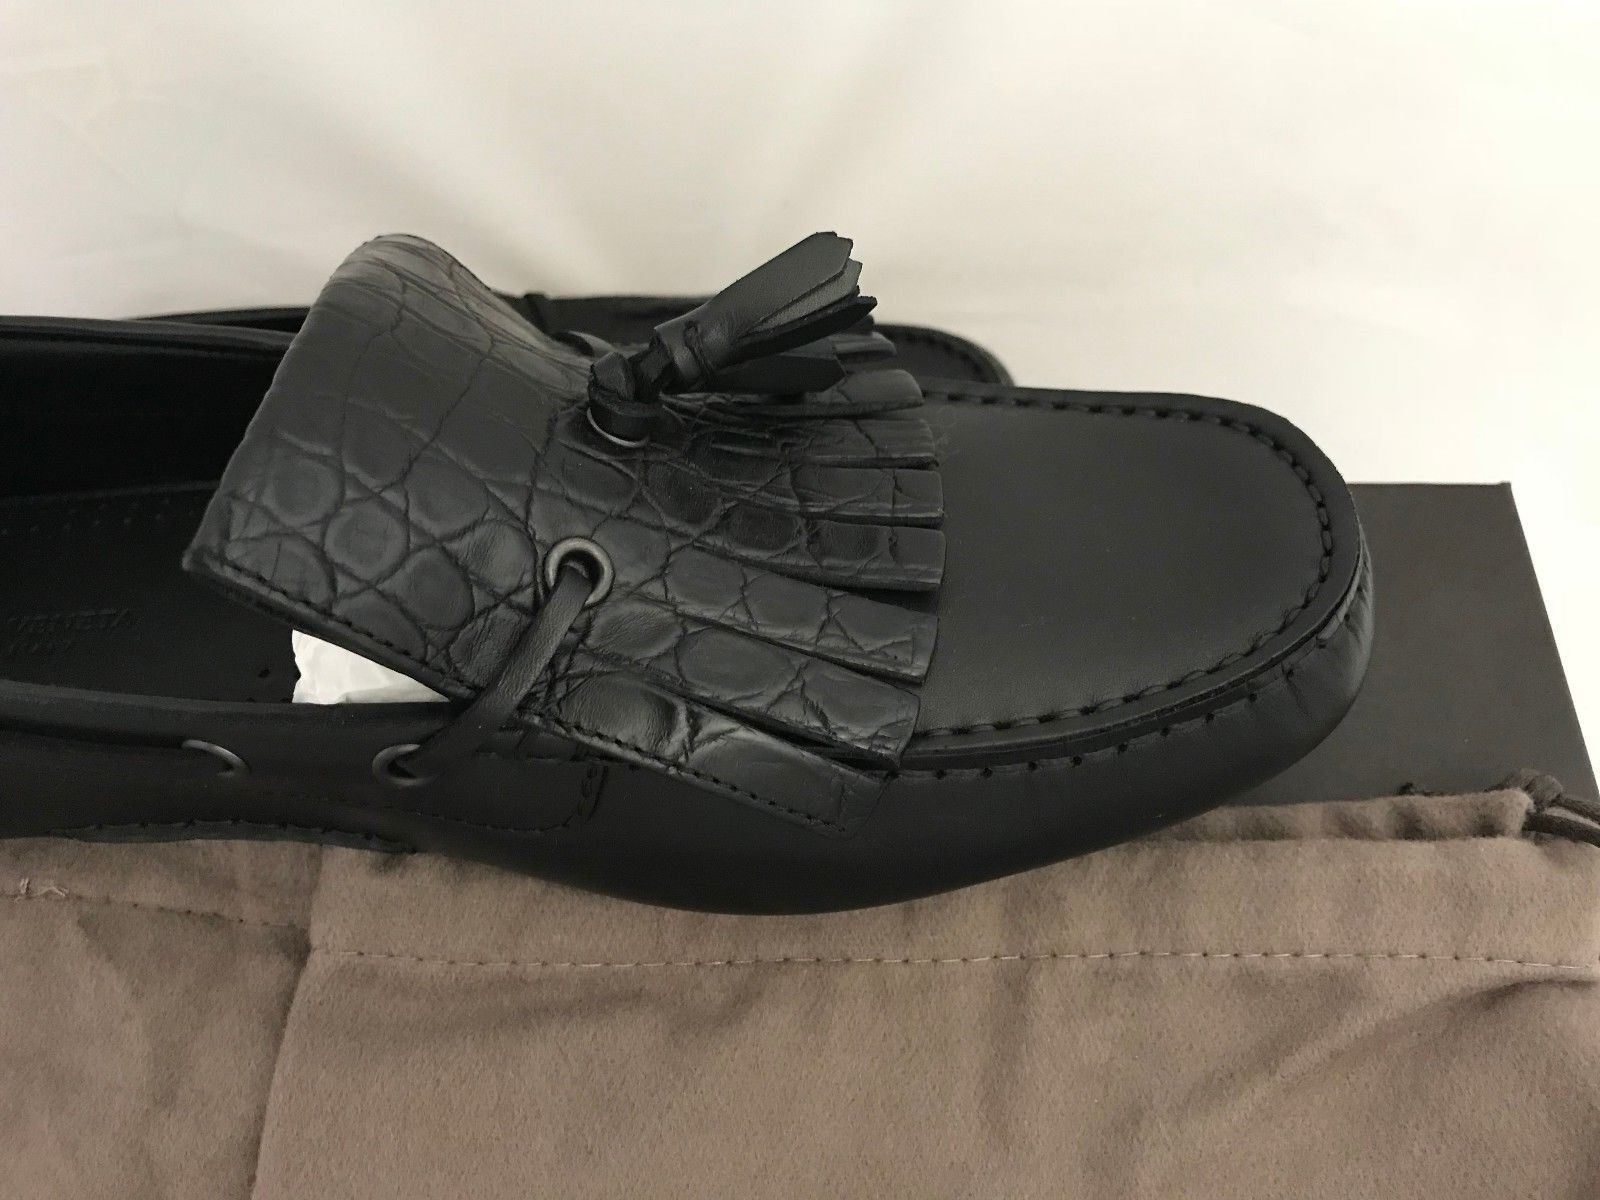 NIB $860 Bottega Veneta Mens Leather Jungle Calf Shoes Black 8 US (41 Eu) - BAYSUPERSTORE